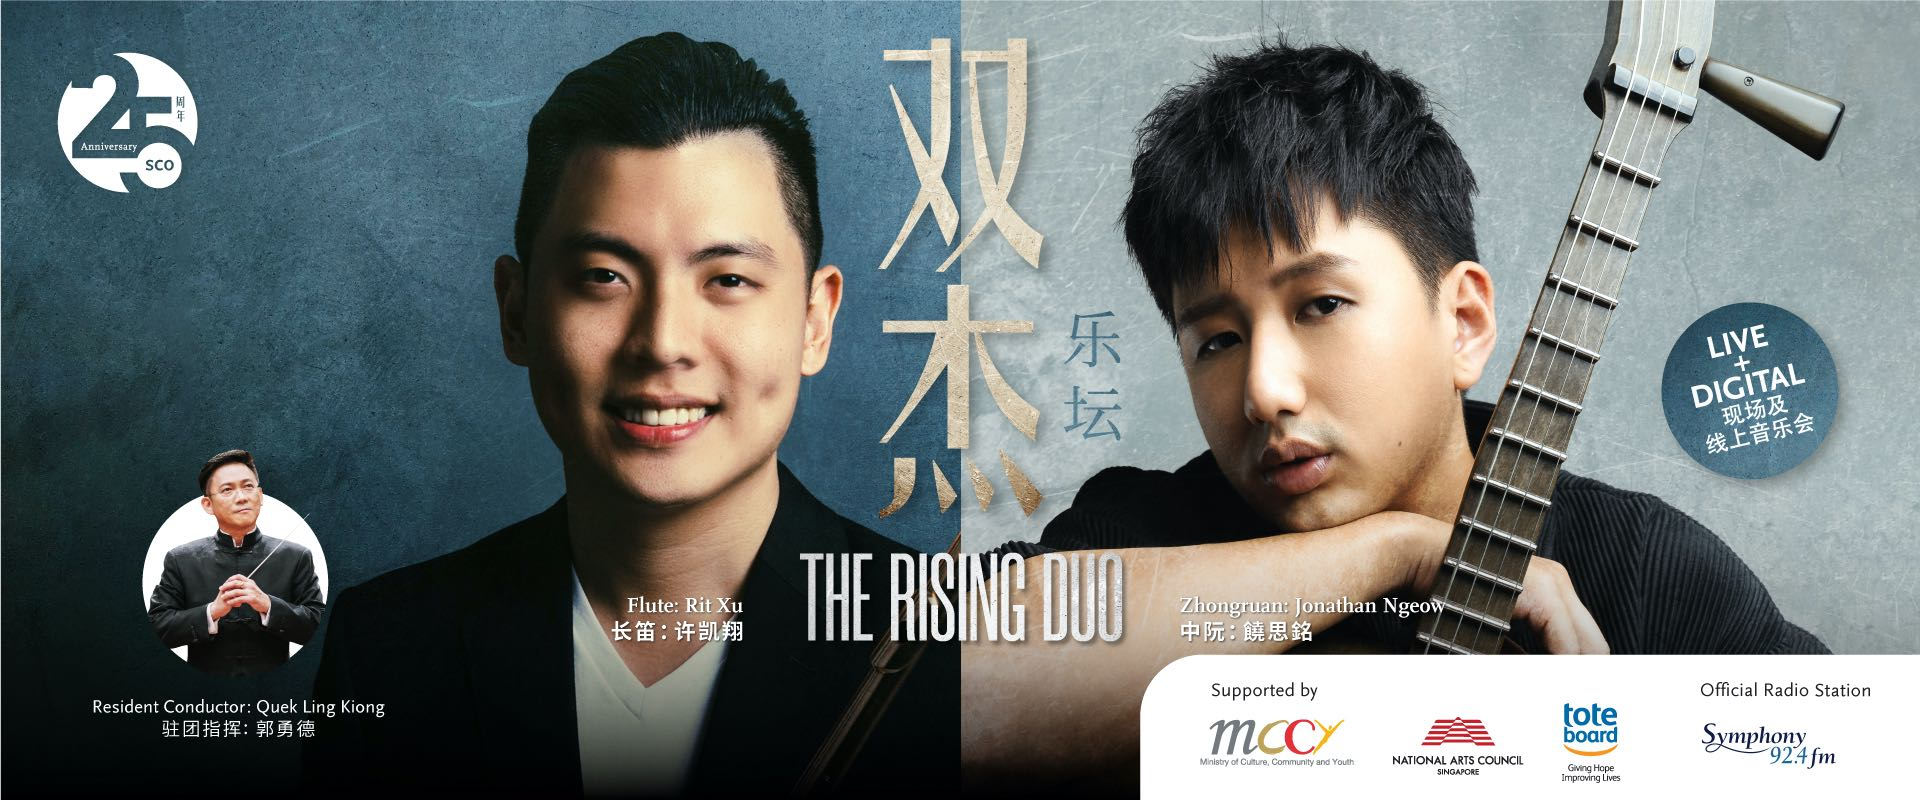 The-Rising-Duo_Website_1920px-x-800px_Desktop Singapore Chinese Orchestra 新加坡华乐团